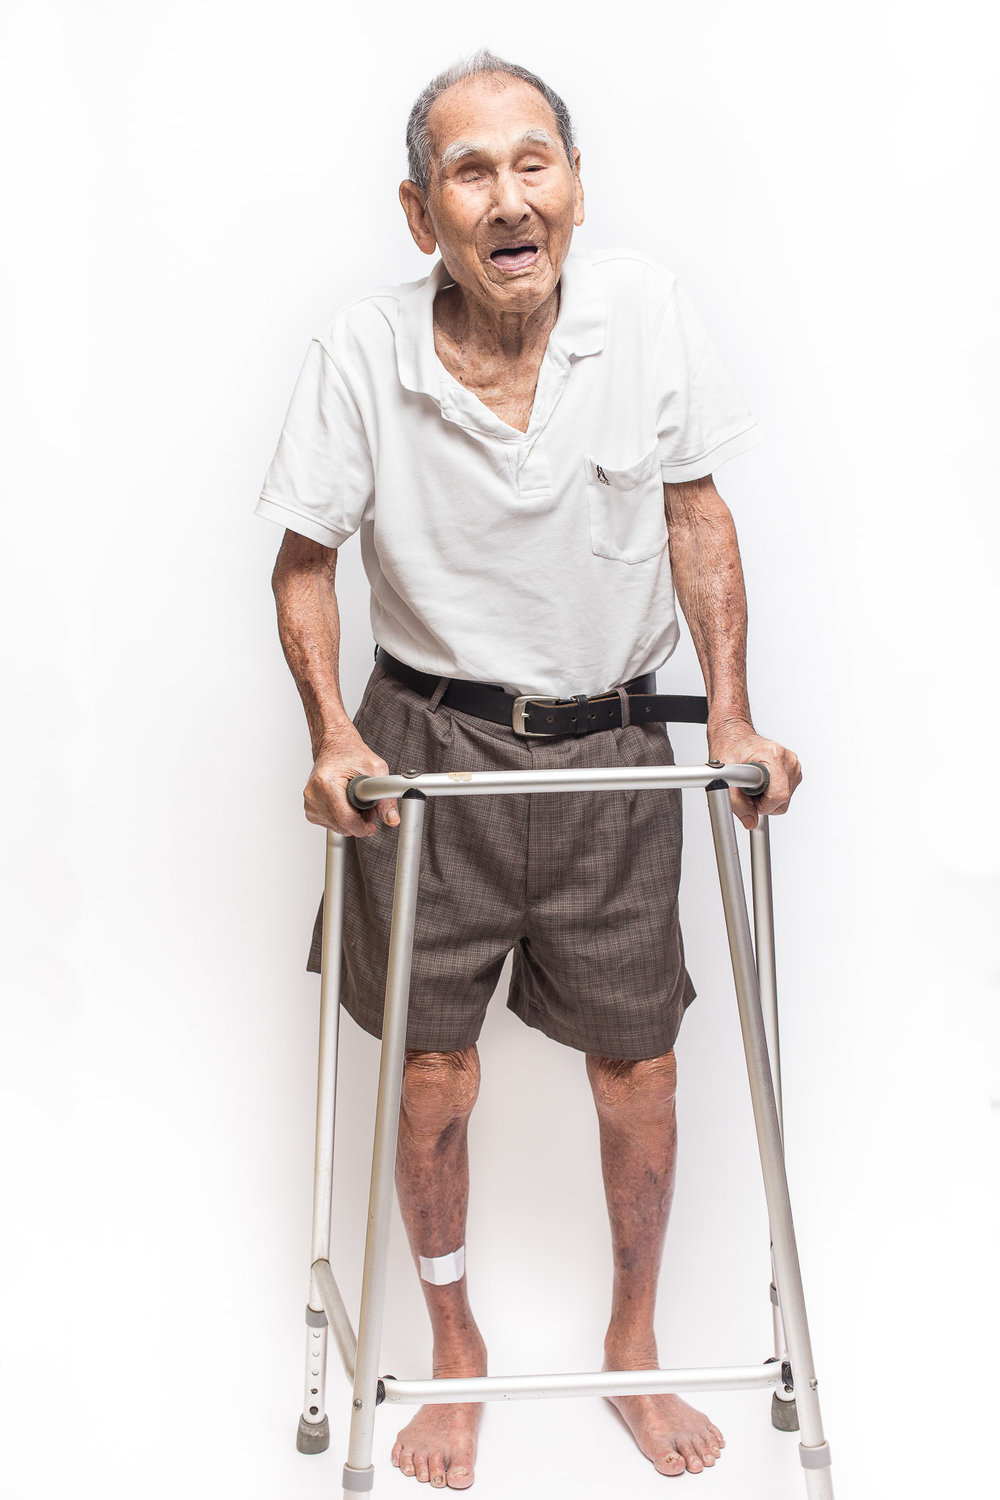 singapore-photographer-hospice-care-016.jpg